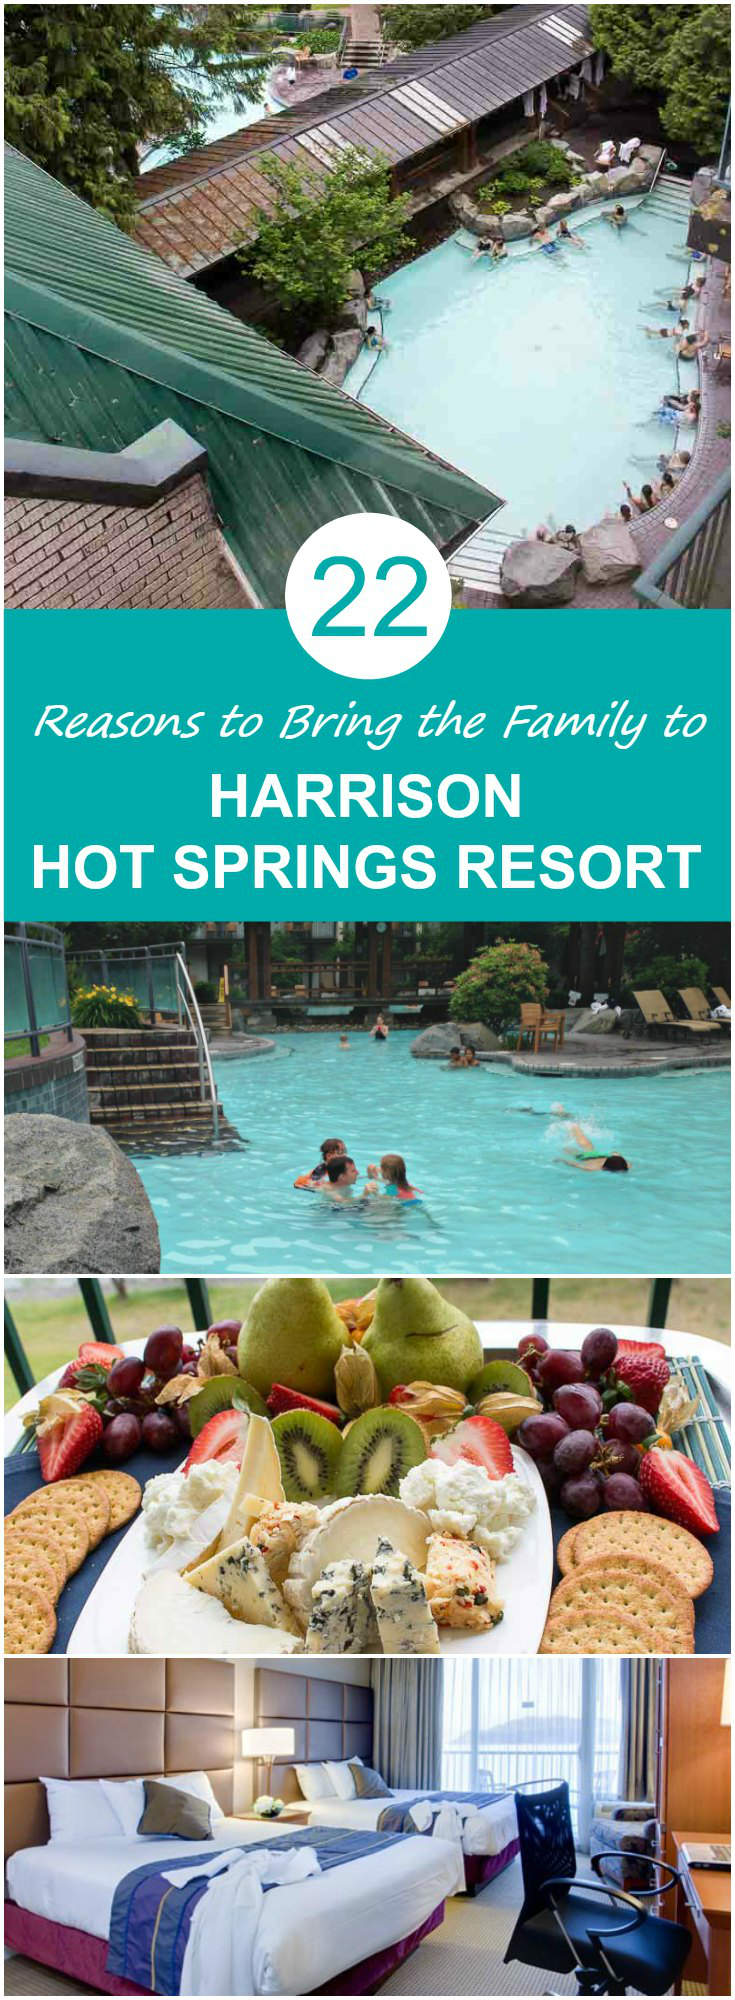 22 Reasons to Stay with the Family at Harrison Hot Springs Resort